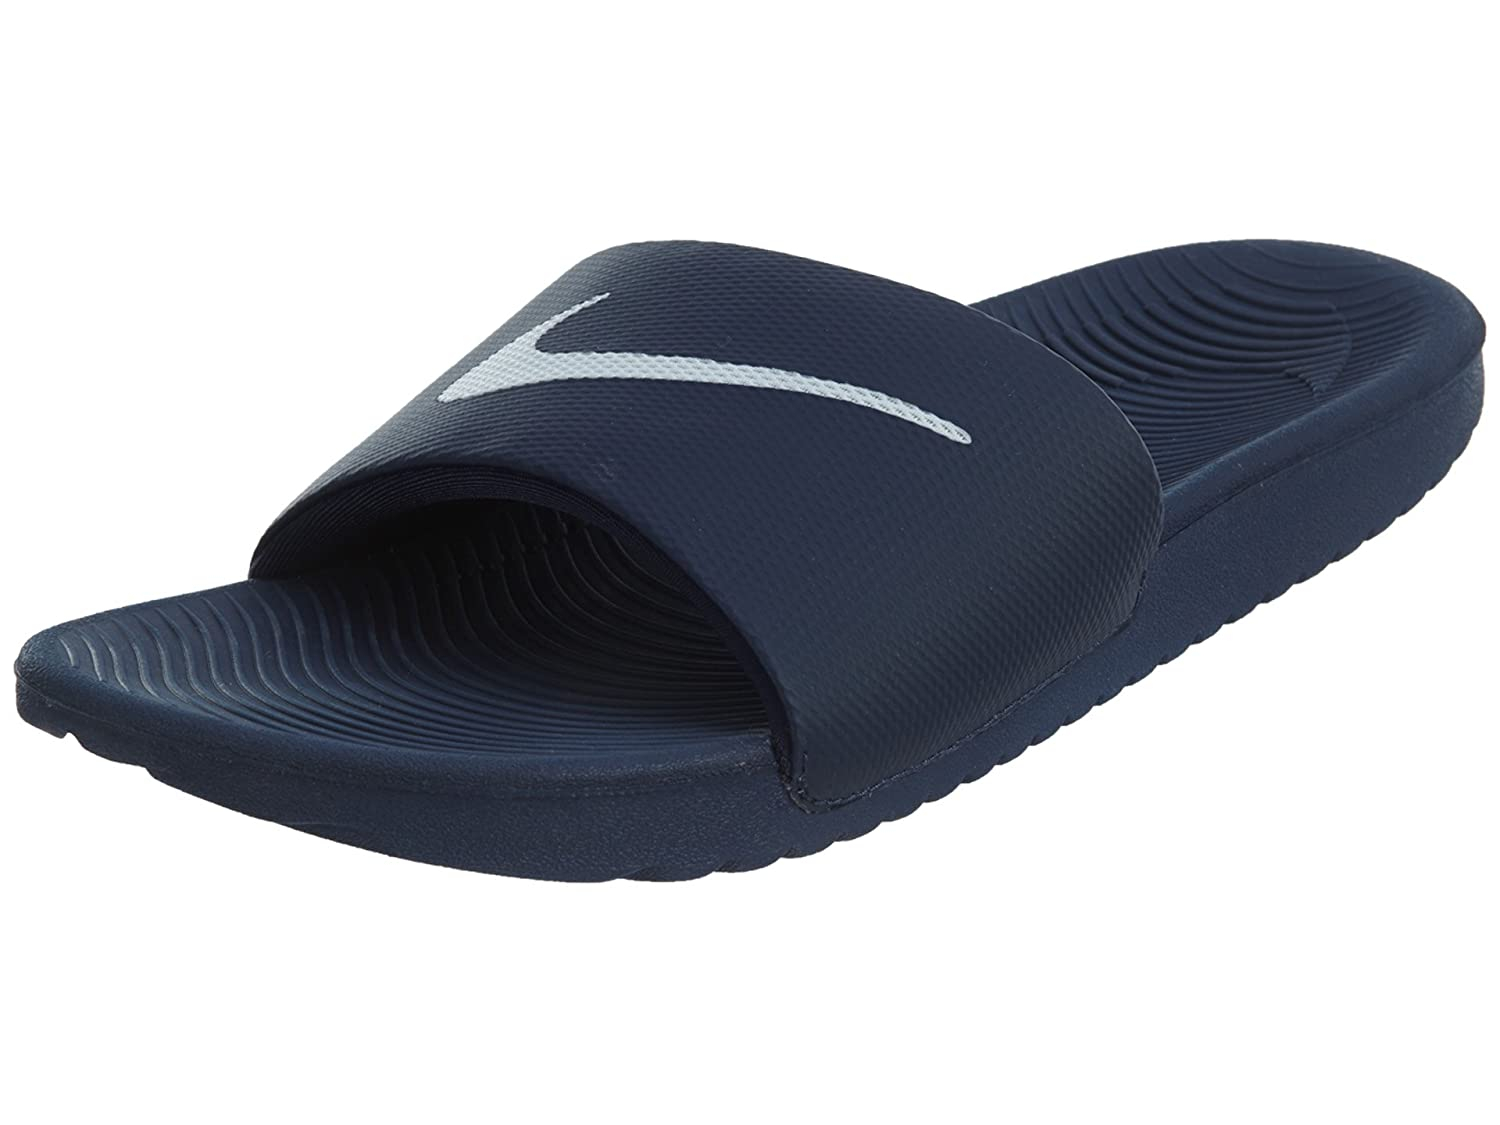 1da5ffda38a1a7 Nike Men s KAWA Slide Midnight Navy White Flip Flops Thong Sandals-5.5 UK  India (38.5 EU)(6 US) (832646-400)  Buy Online at Low Prices in India -  Amazon.in